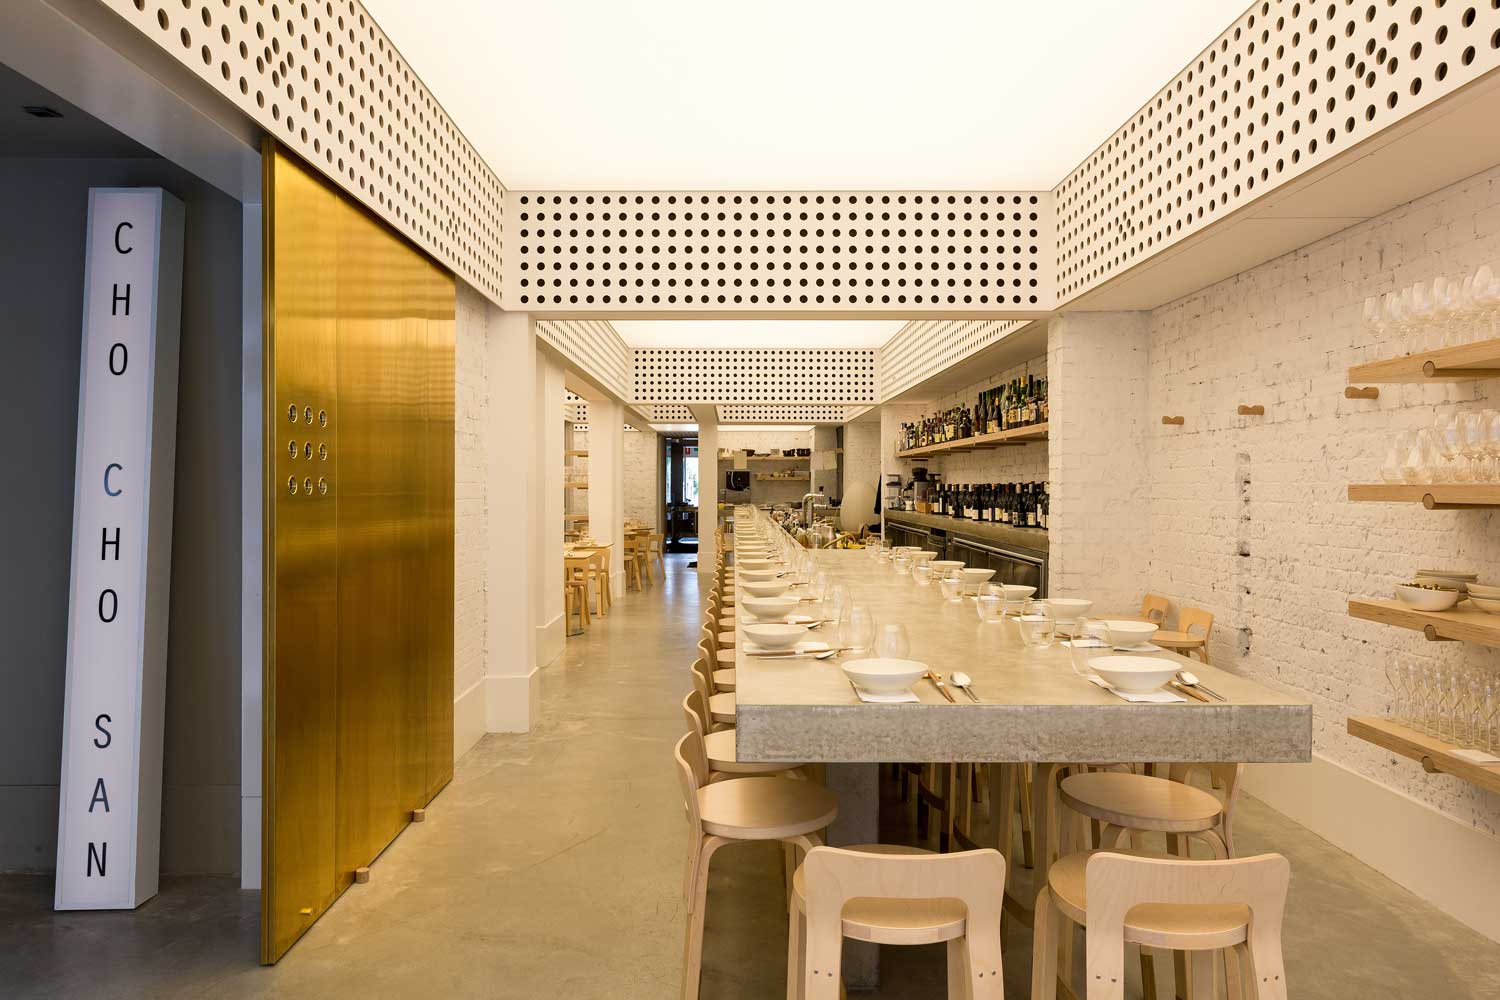 We love the interior of  Cho Cho San  by George Livissianis with its back-lit ceiling that provides warm and ambient light for daytime and evening dining. The stretched Barrisol ceiling is a unique design feature that creates subtle lighting in what was a cavernous space with little access to natural light.